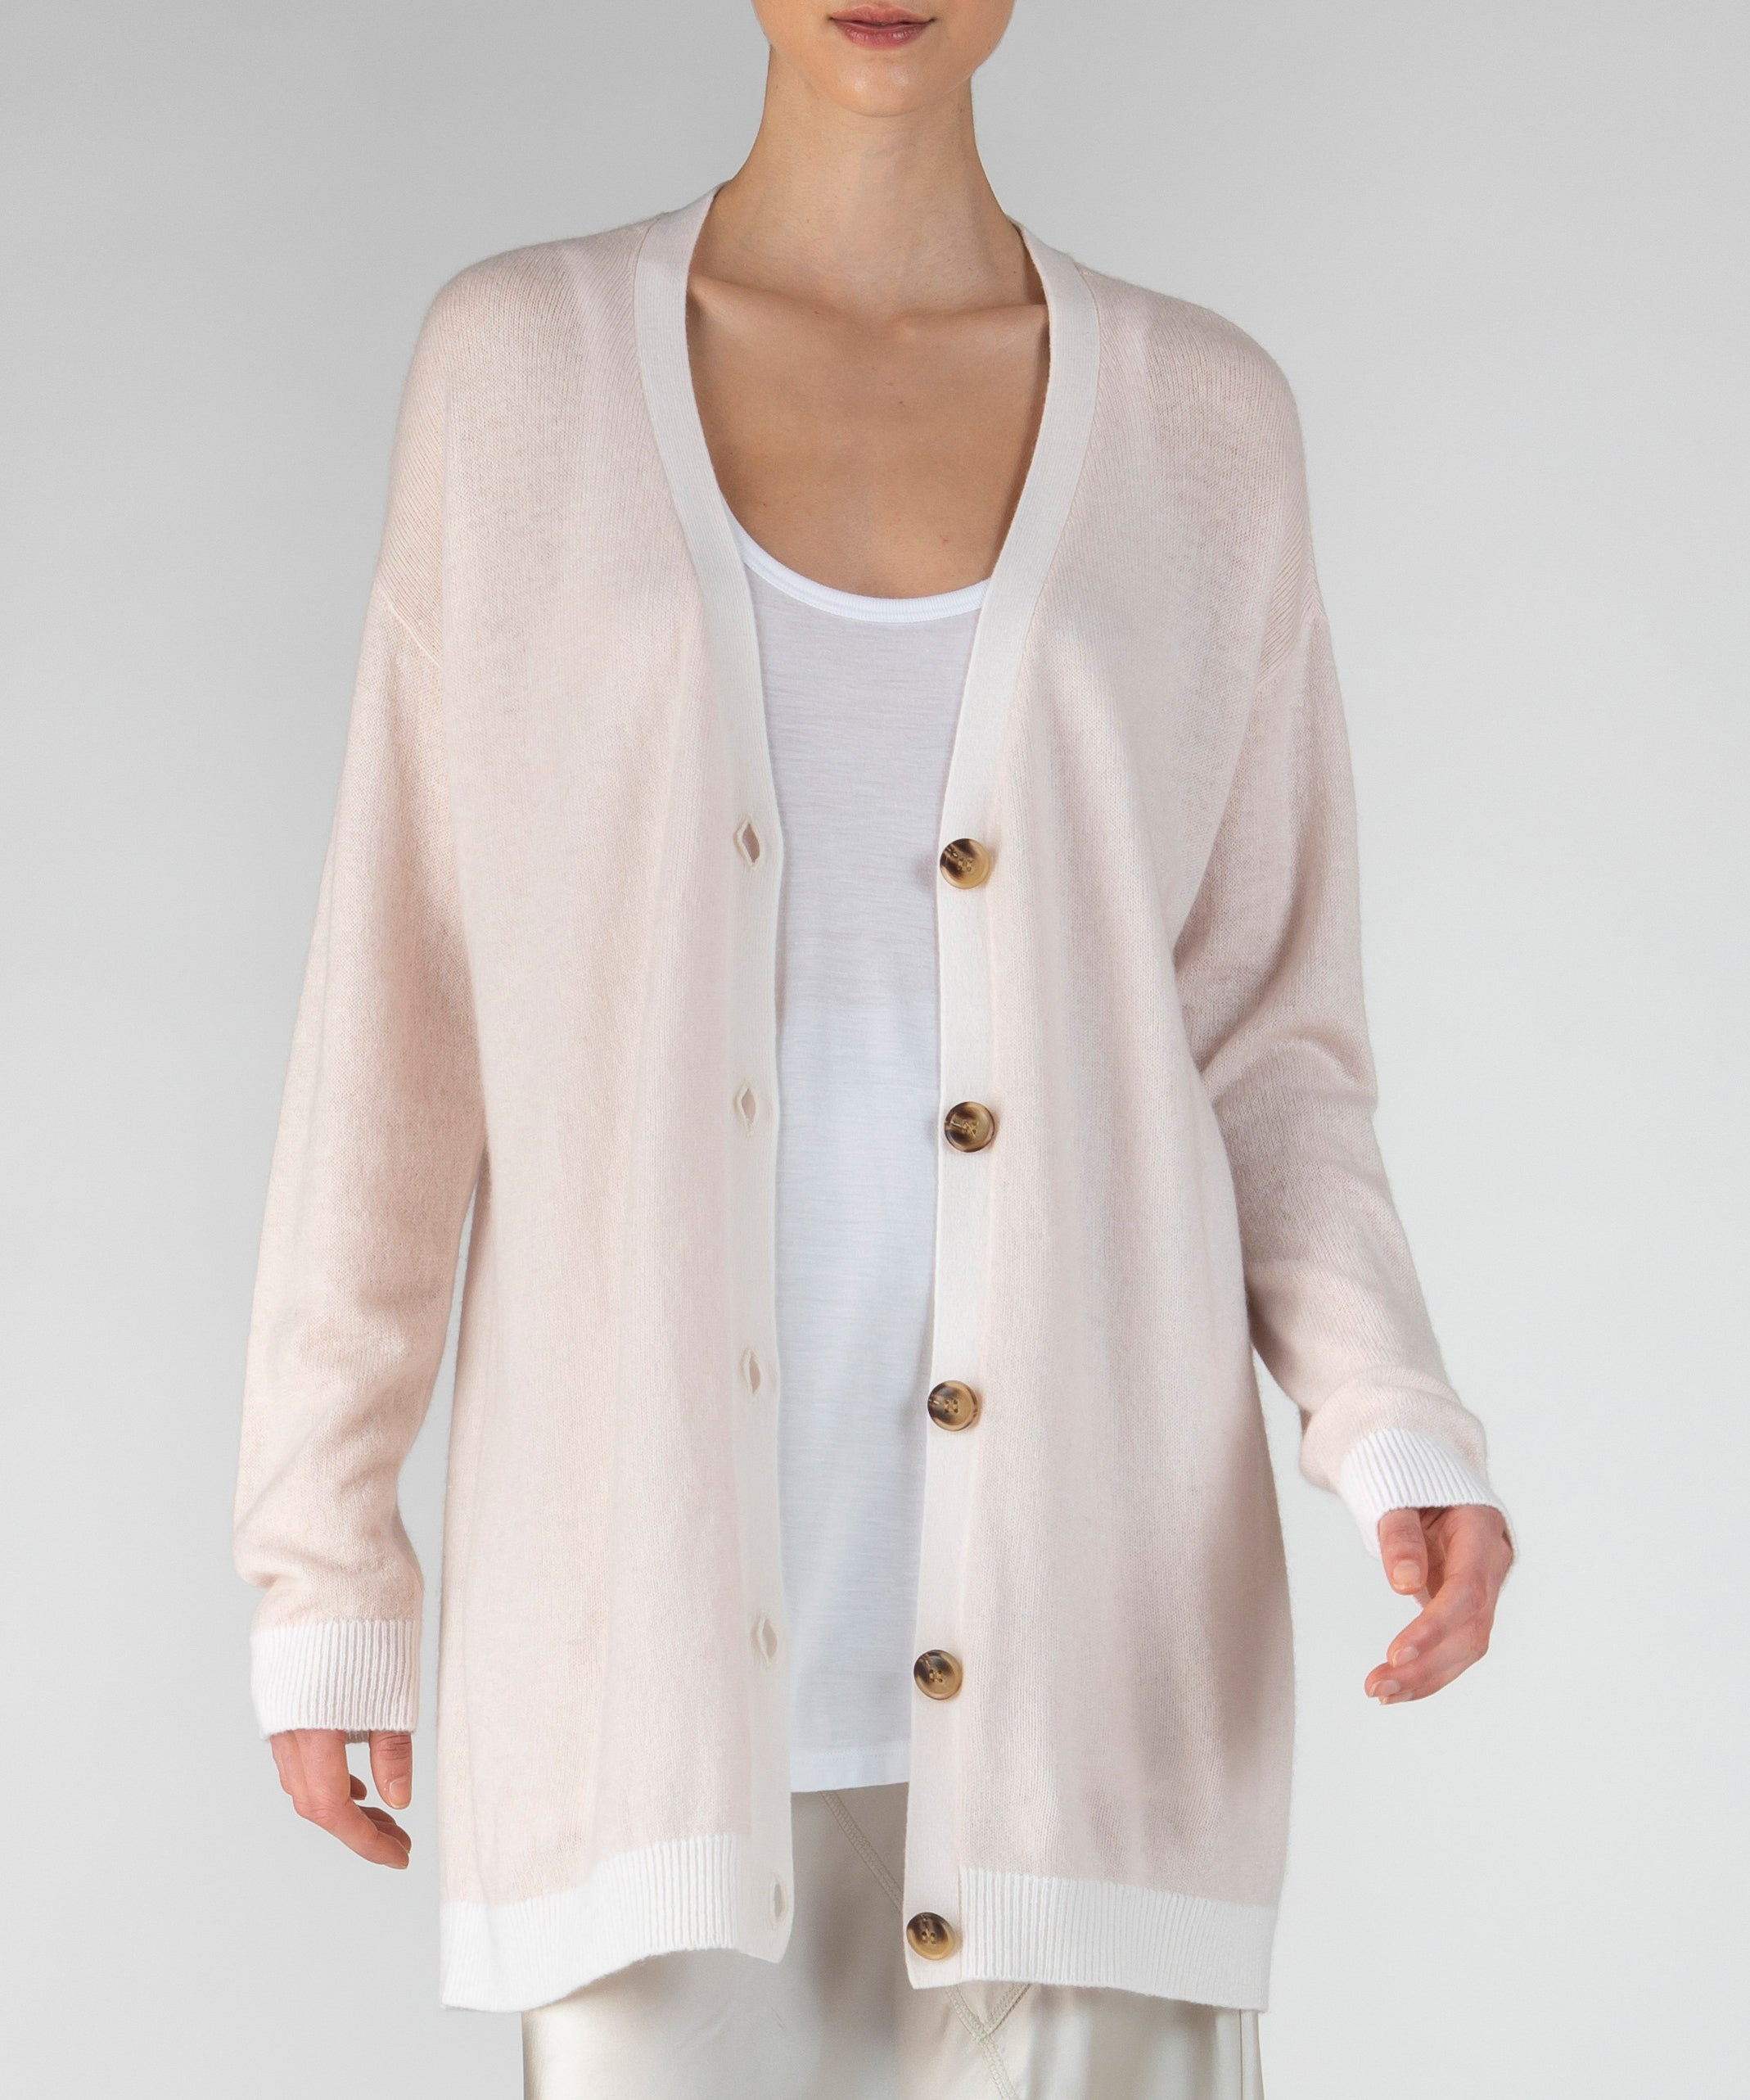 Fragrance Oversized Cashmere Cardigan - Women's Luxe Sweater by ATM Anthony Thomas Melillo